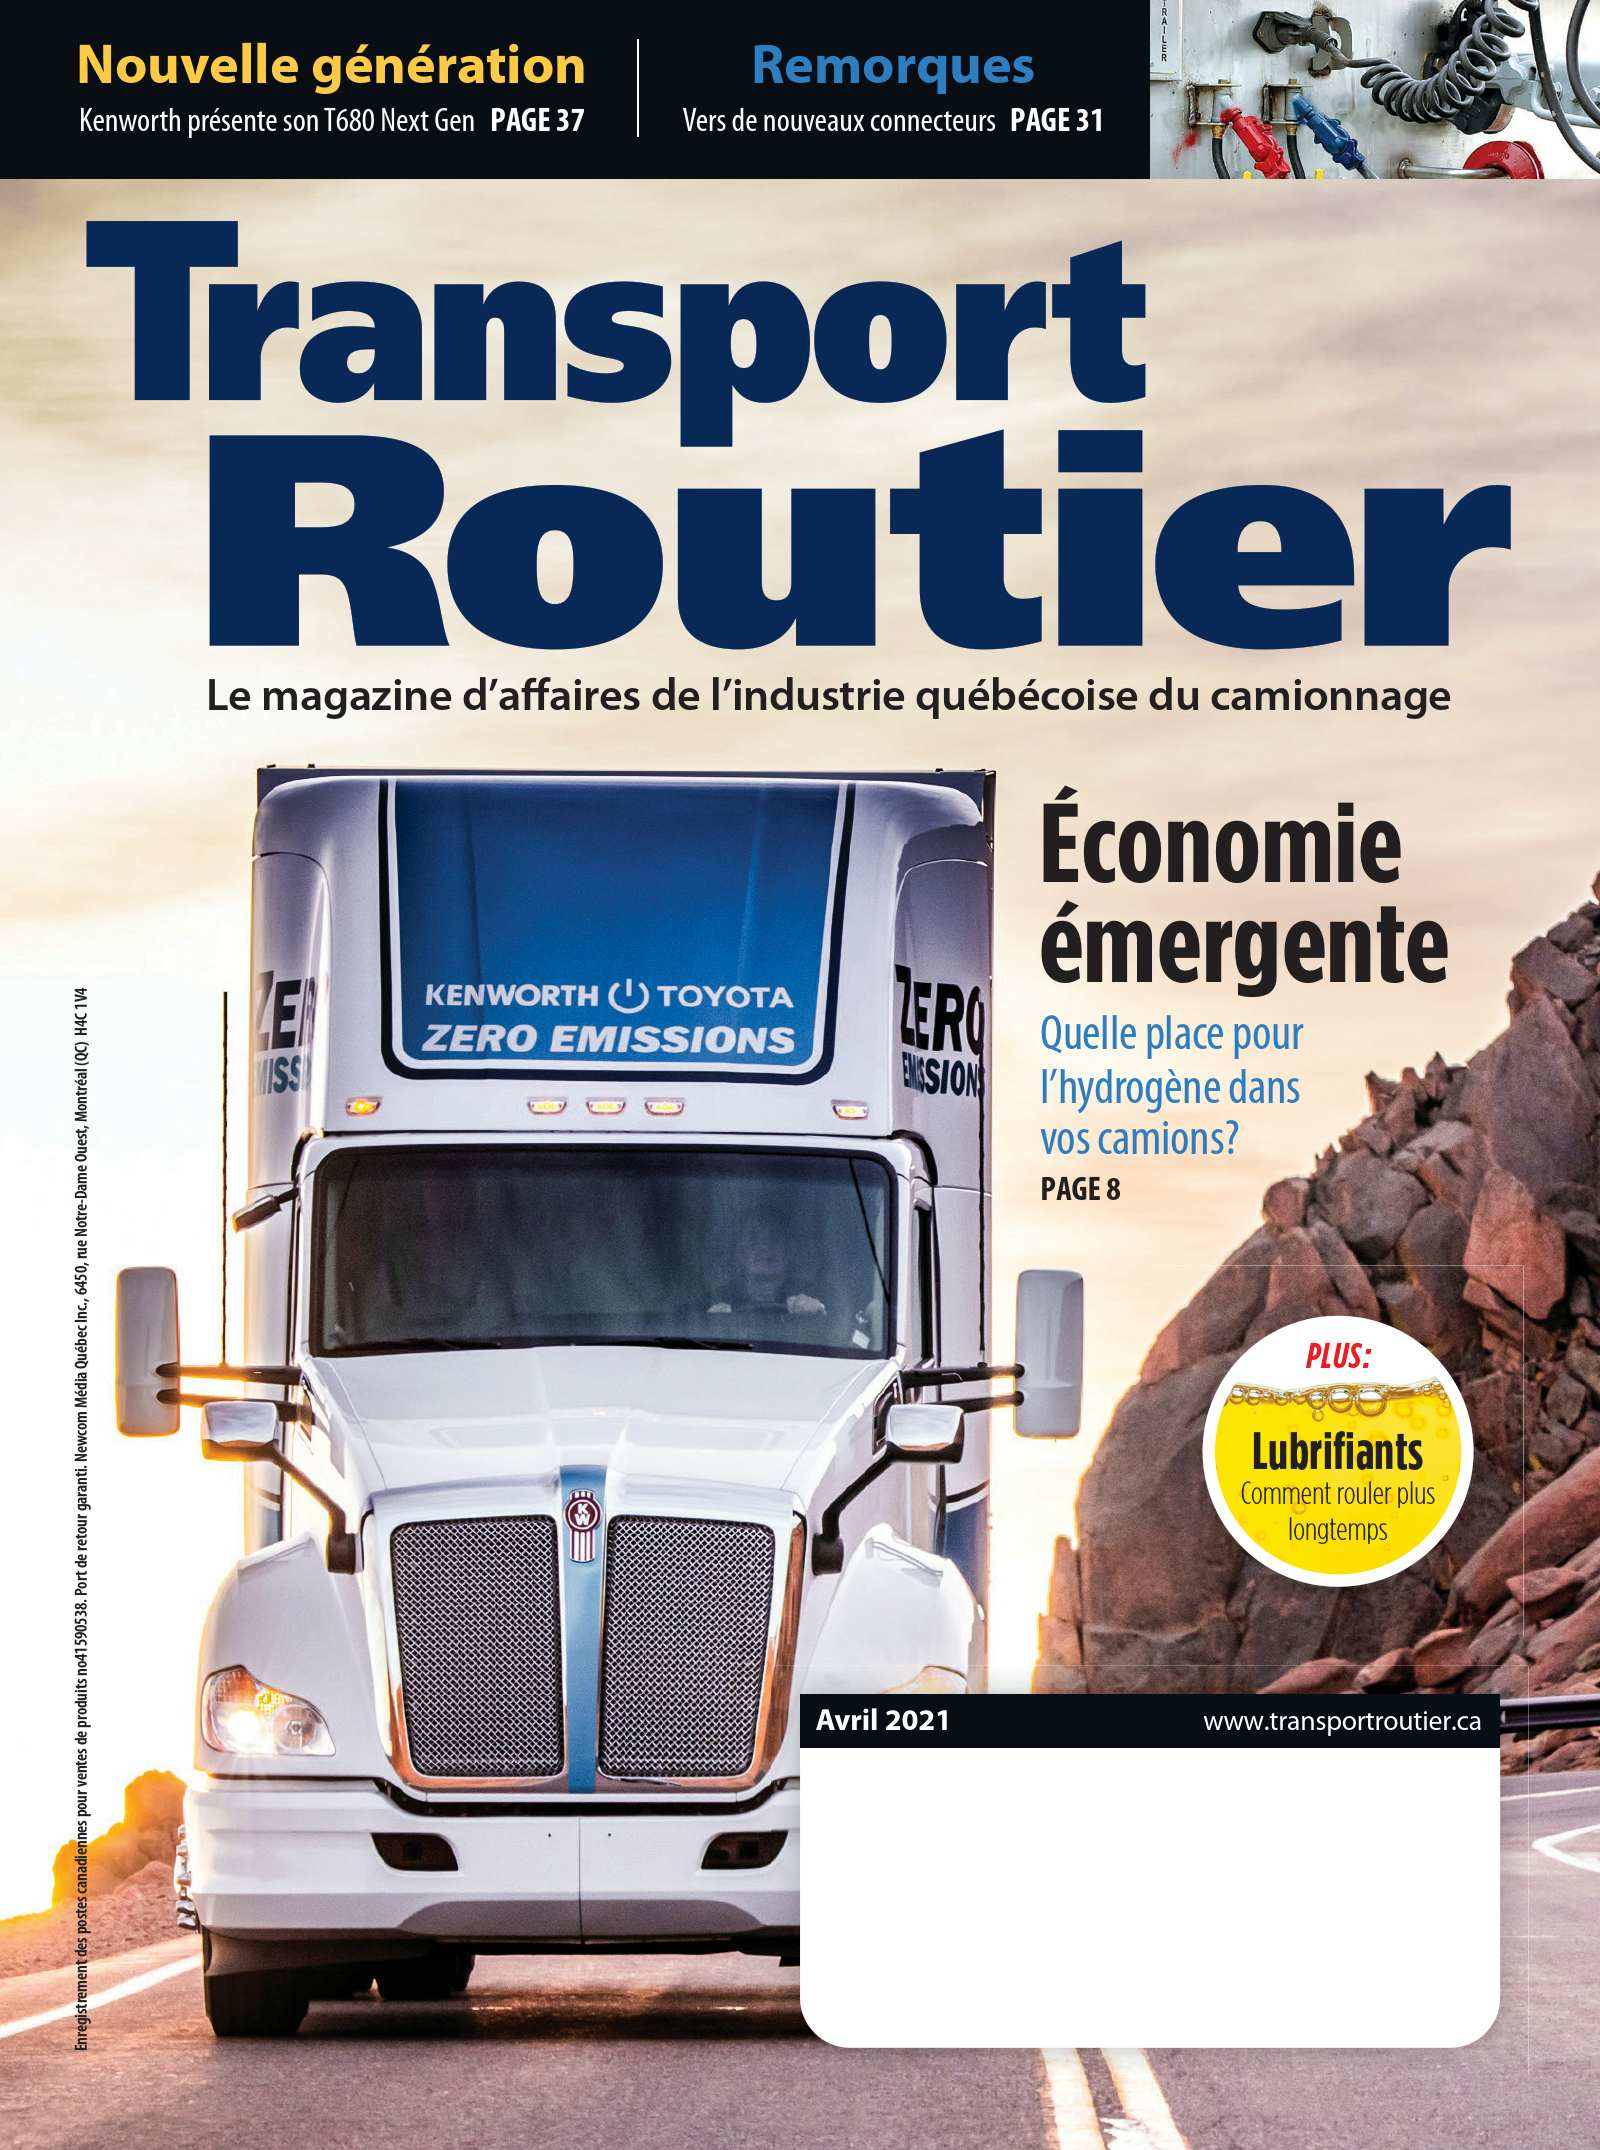 Transport routier – 1 avril 2021